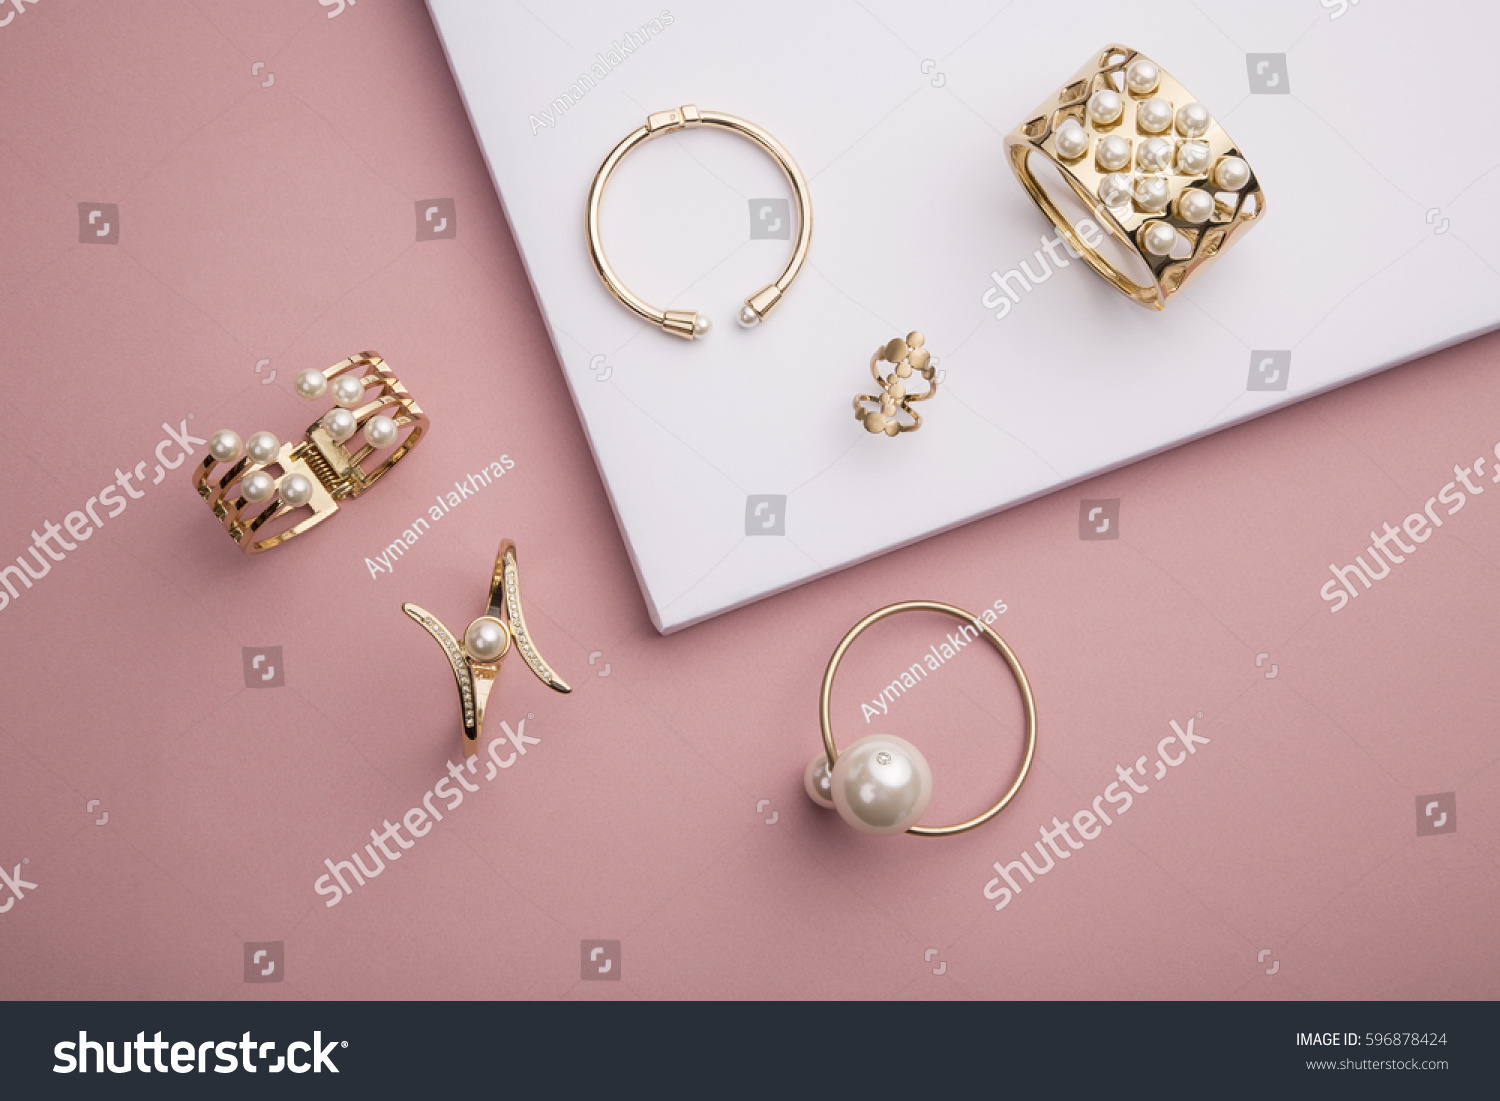 Pearl Golden Bracelets Ring On Pink Stock Photo (Edit Now) 596878424 ...